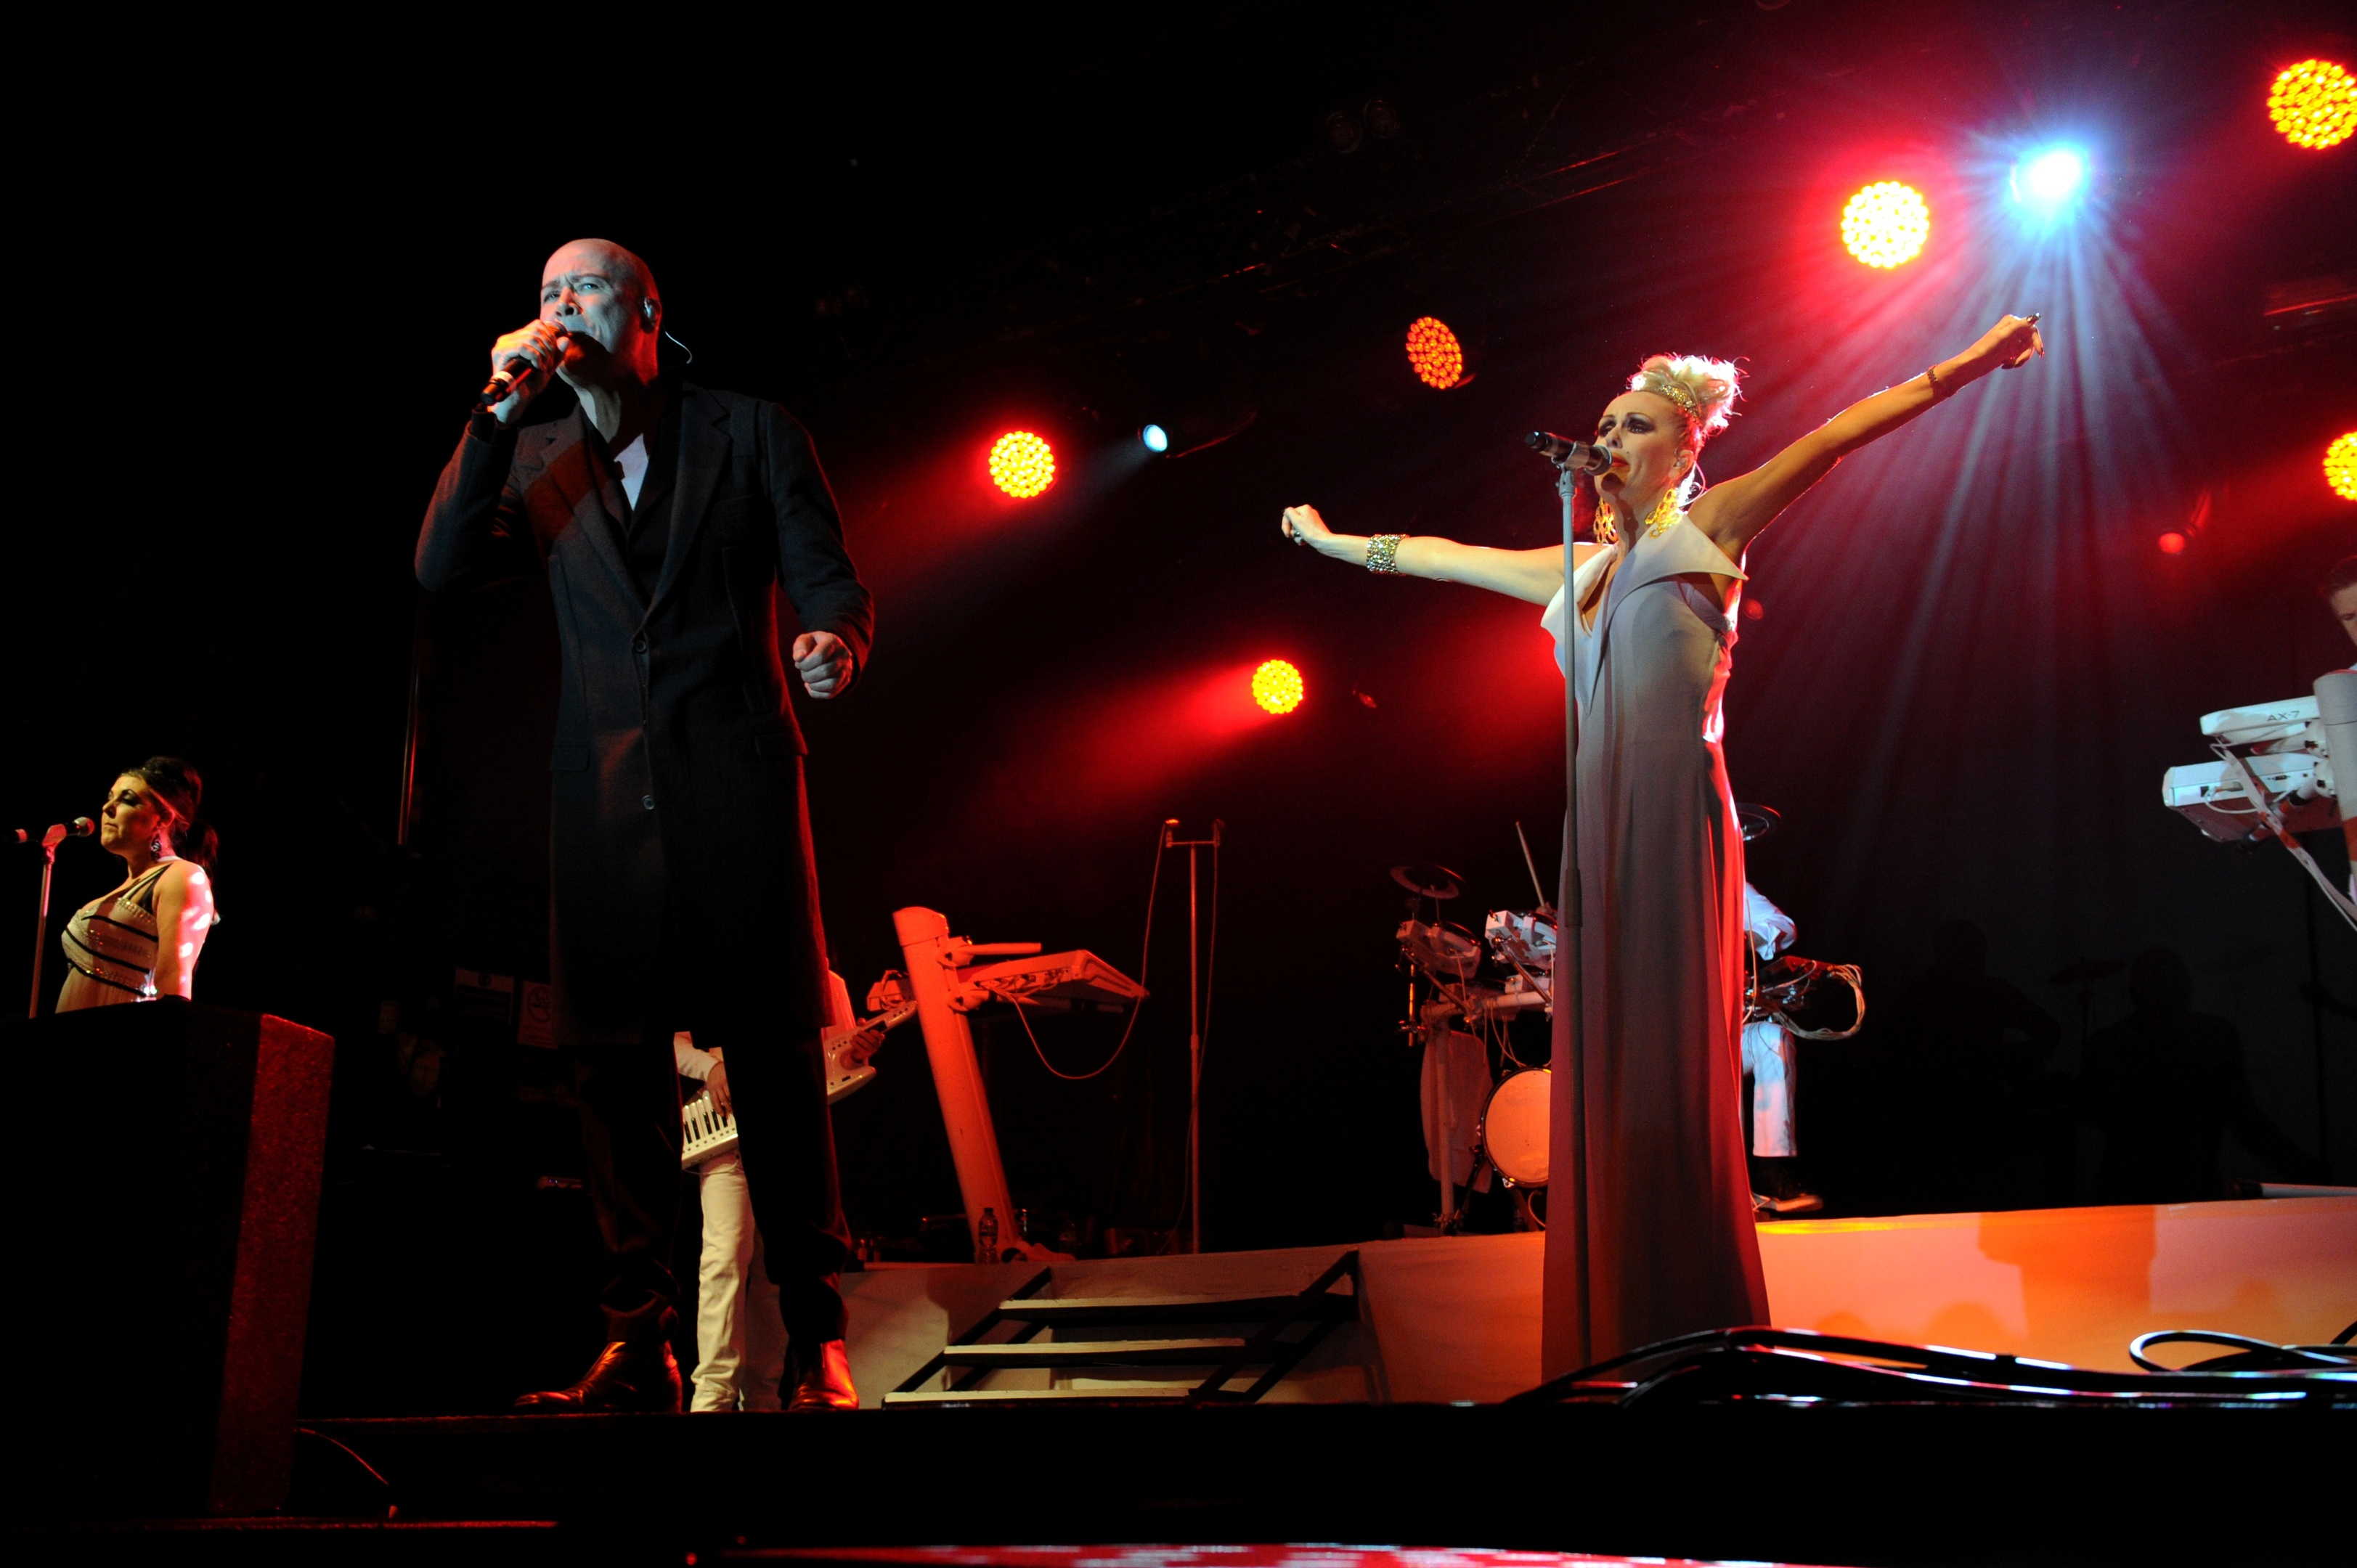 The Human League playing in Stonehaven in 2014.